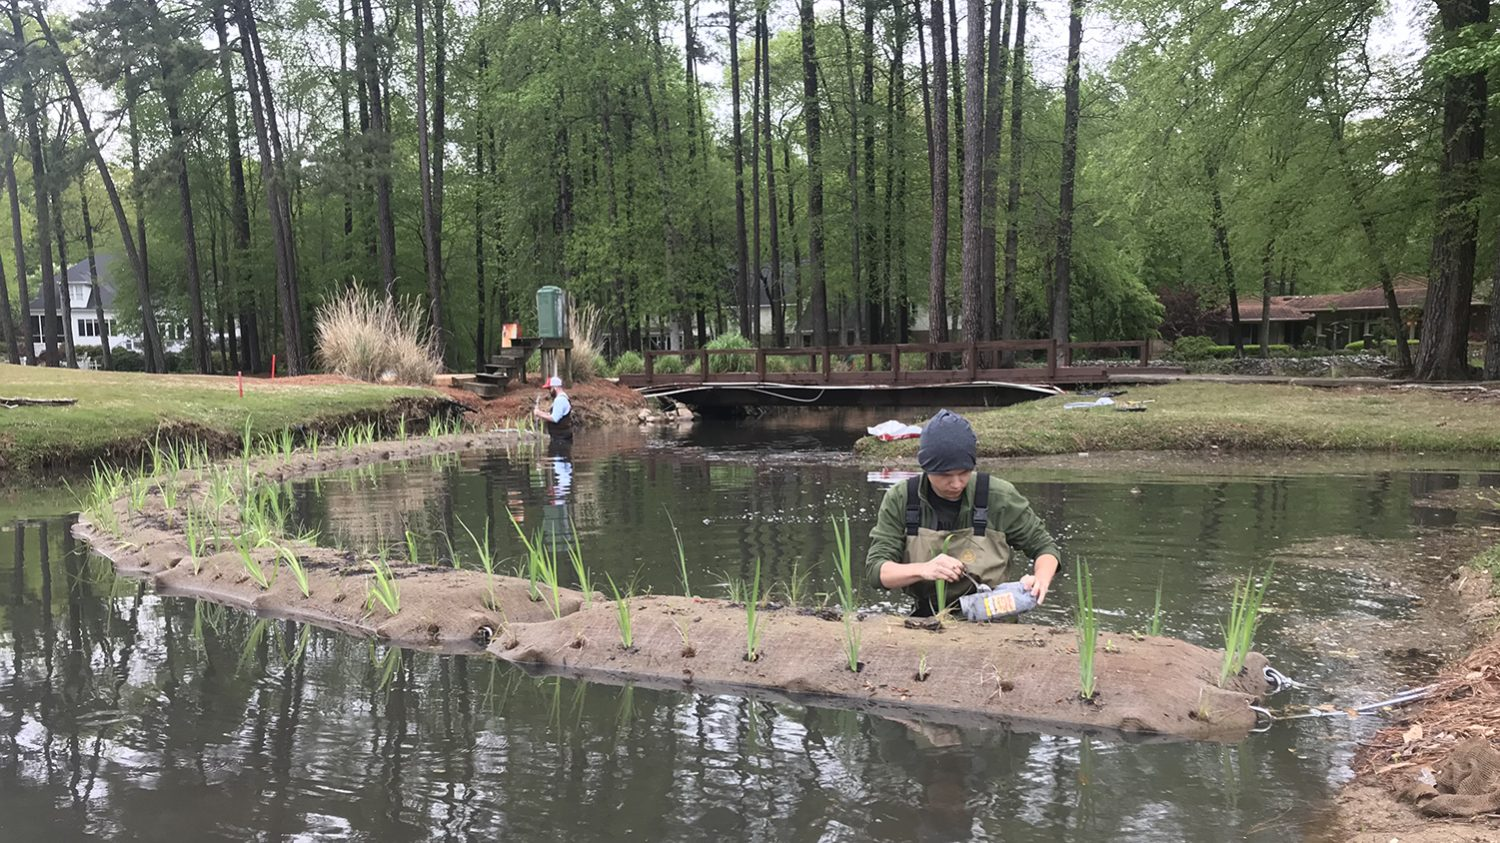 Two students working in a water body (lake or pond), where they are building floating wetlands.